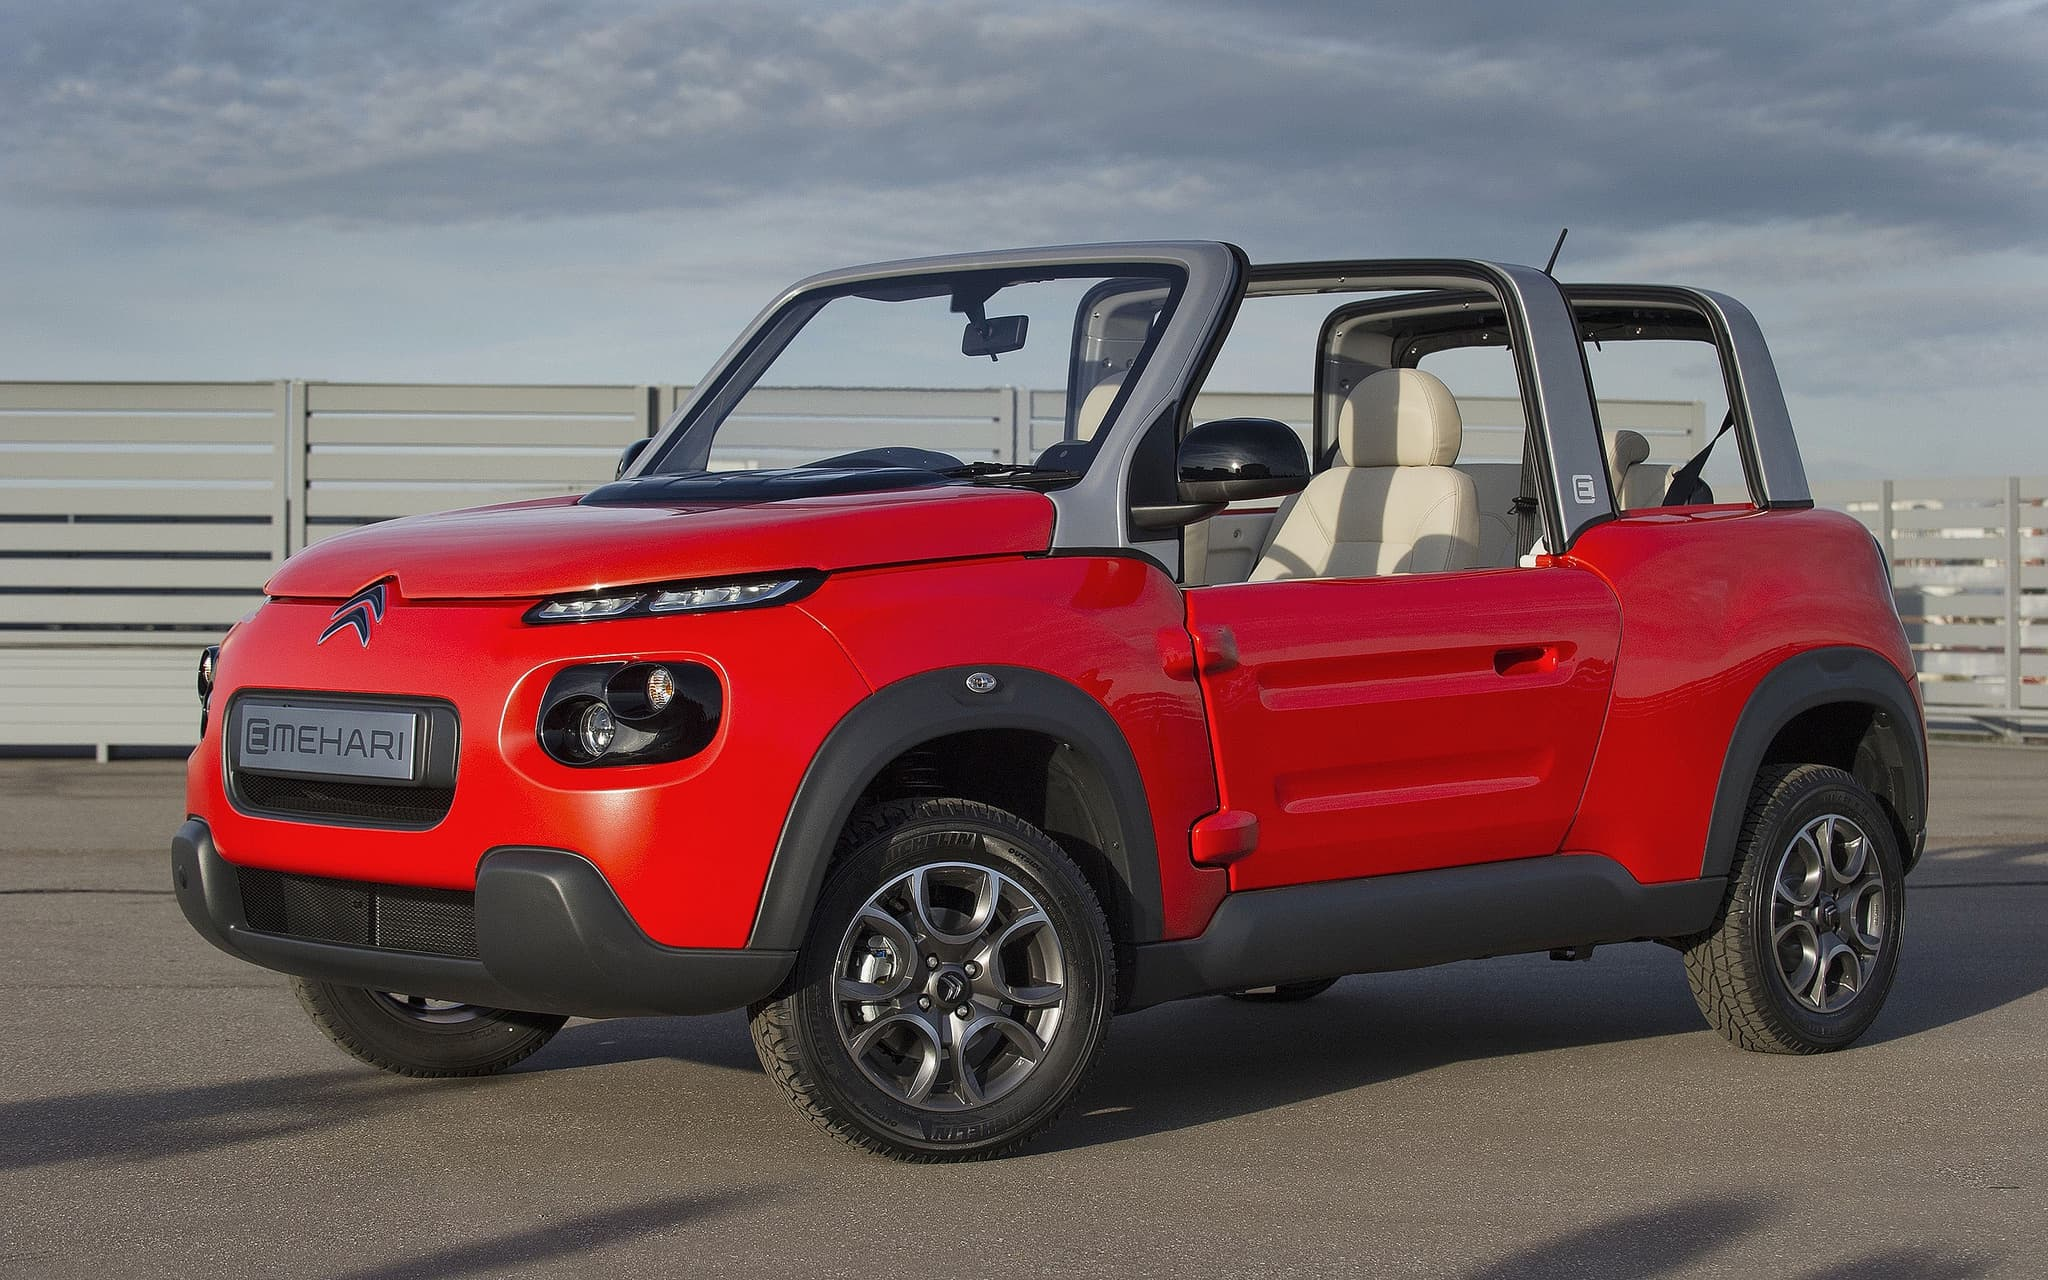 Citroen E-Mehari 2016 wallpapers